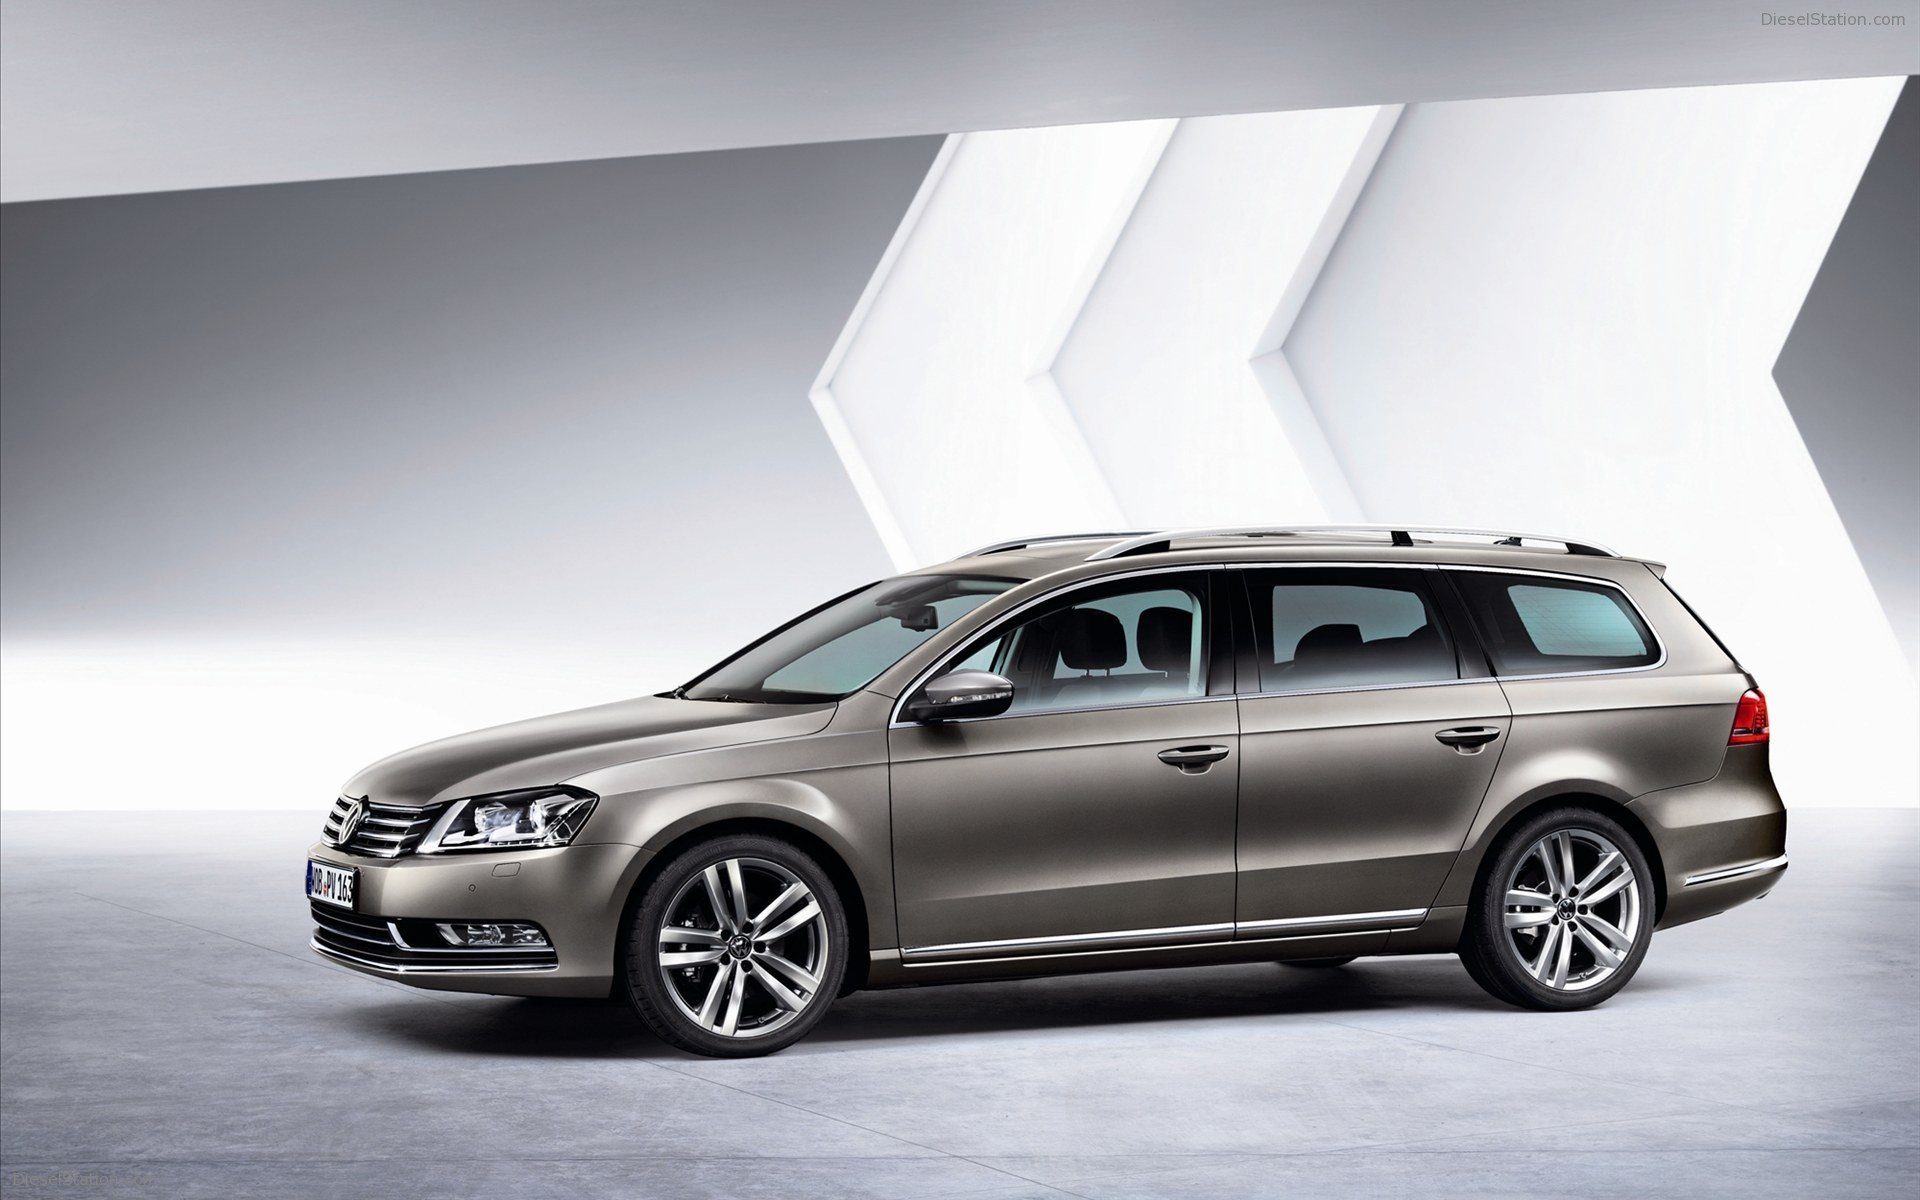 volkswagen passat variant 2014 review amazing pictures and images look at the car. Black Bedroom Furniture Sets. Home Design Ideas